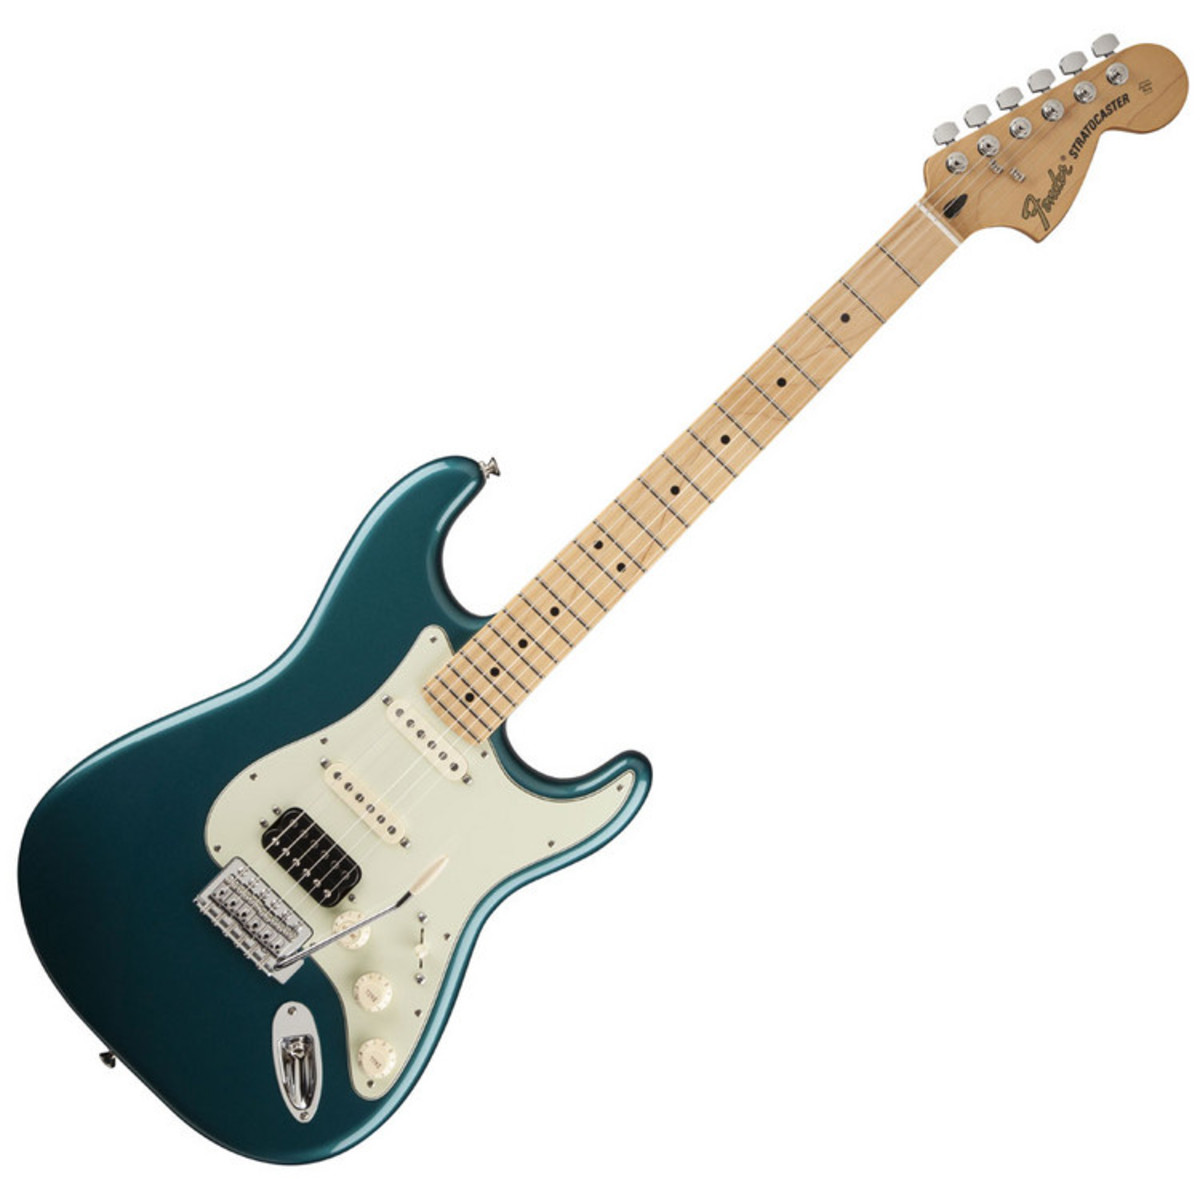 disc fender deluxe lone star stratocaster guitar mn ocean turquoise at. Black Bedroom Furniture Sets. Home Design Ideas